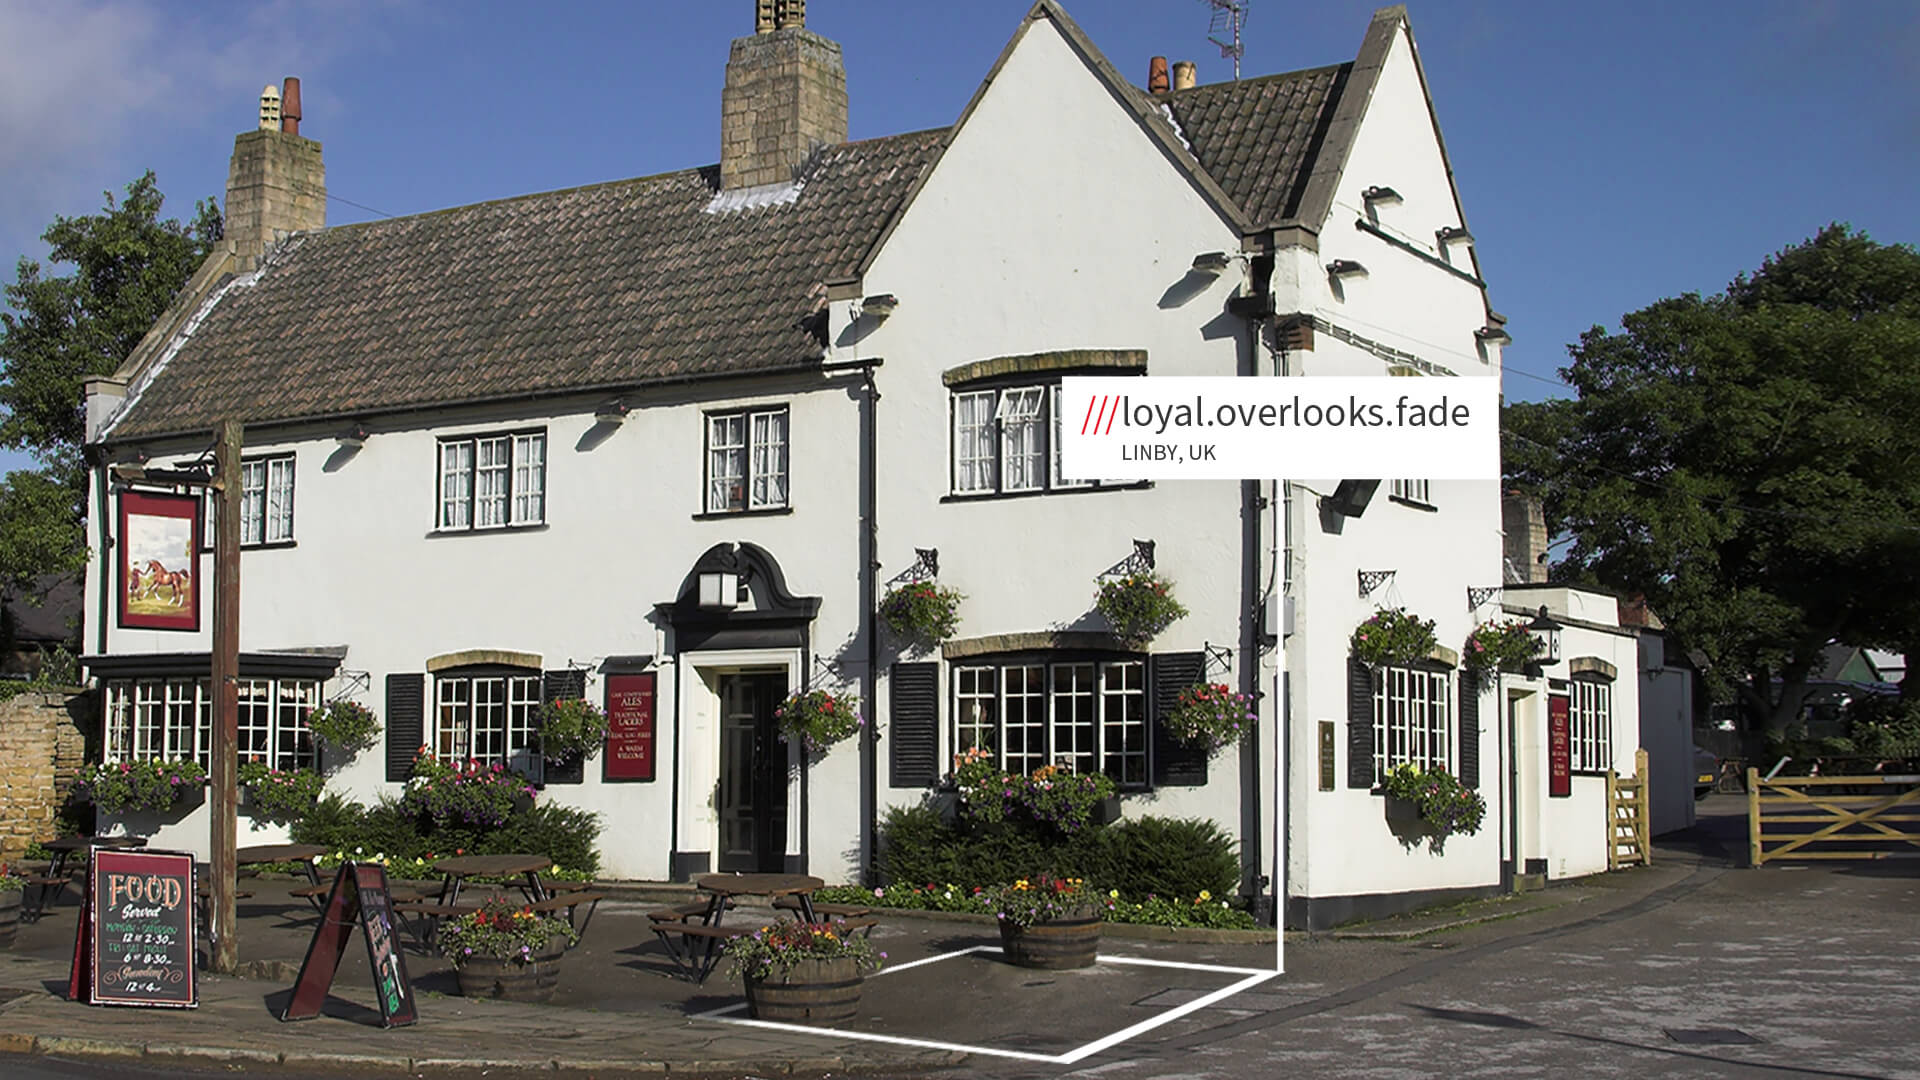 Linby country pub with what3words address